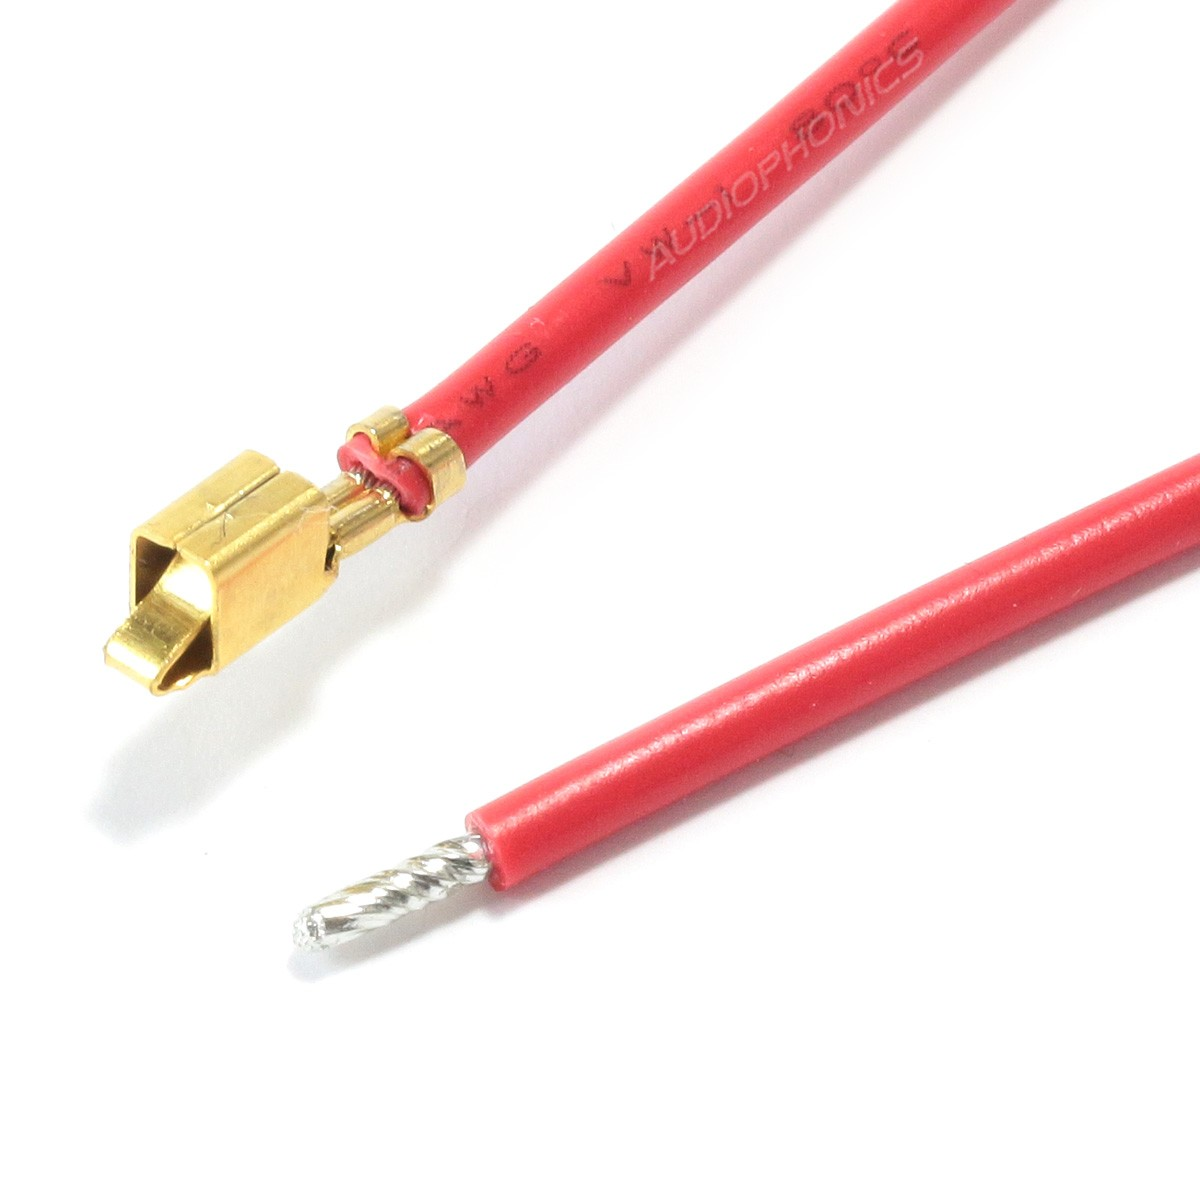 VH 3.96mm Cable Female to Bare wire 1 Pole No Casing Gold-Plated 30cm Red (Unit)